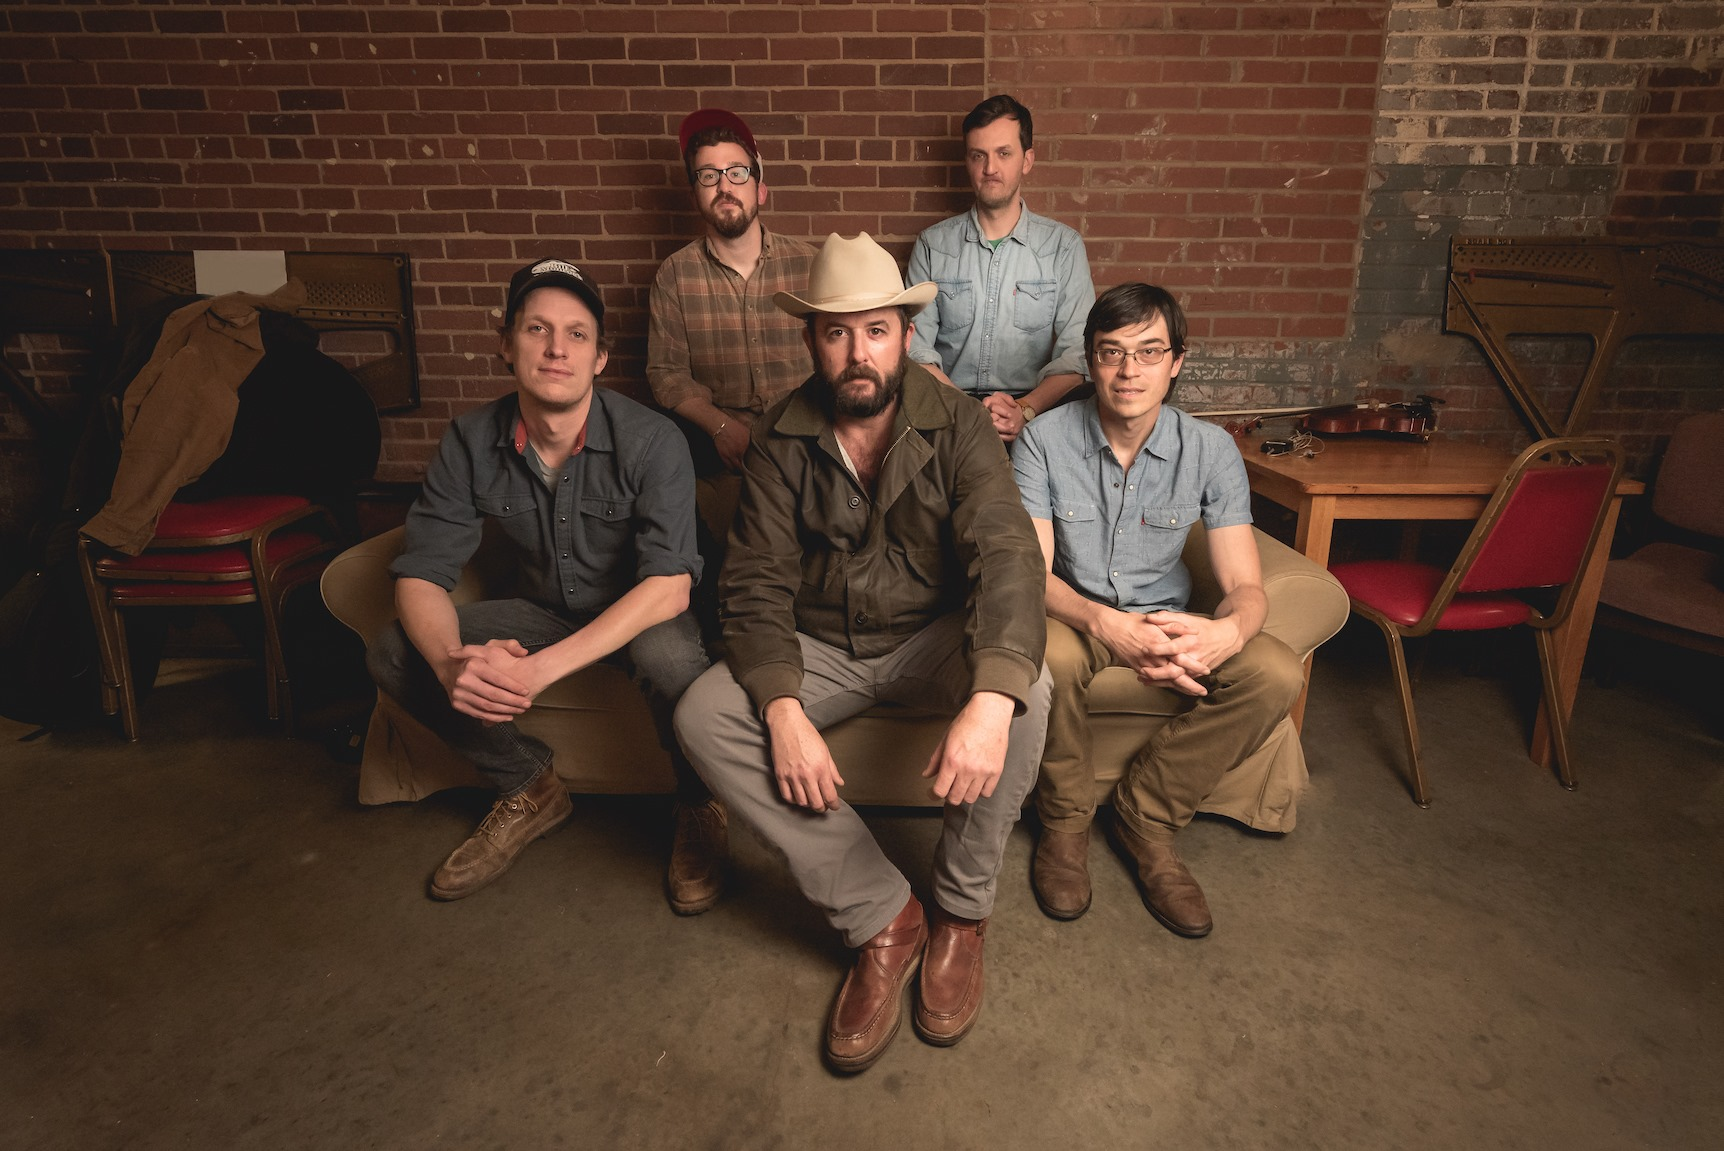 Town Mountain to Play The Fox Theatre in Boulder on June 3rd